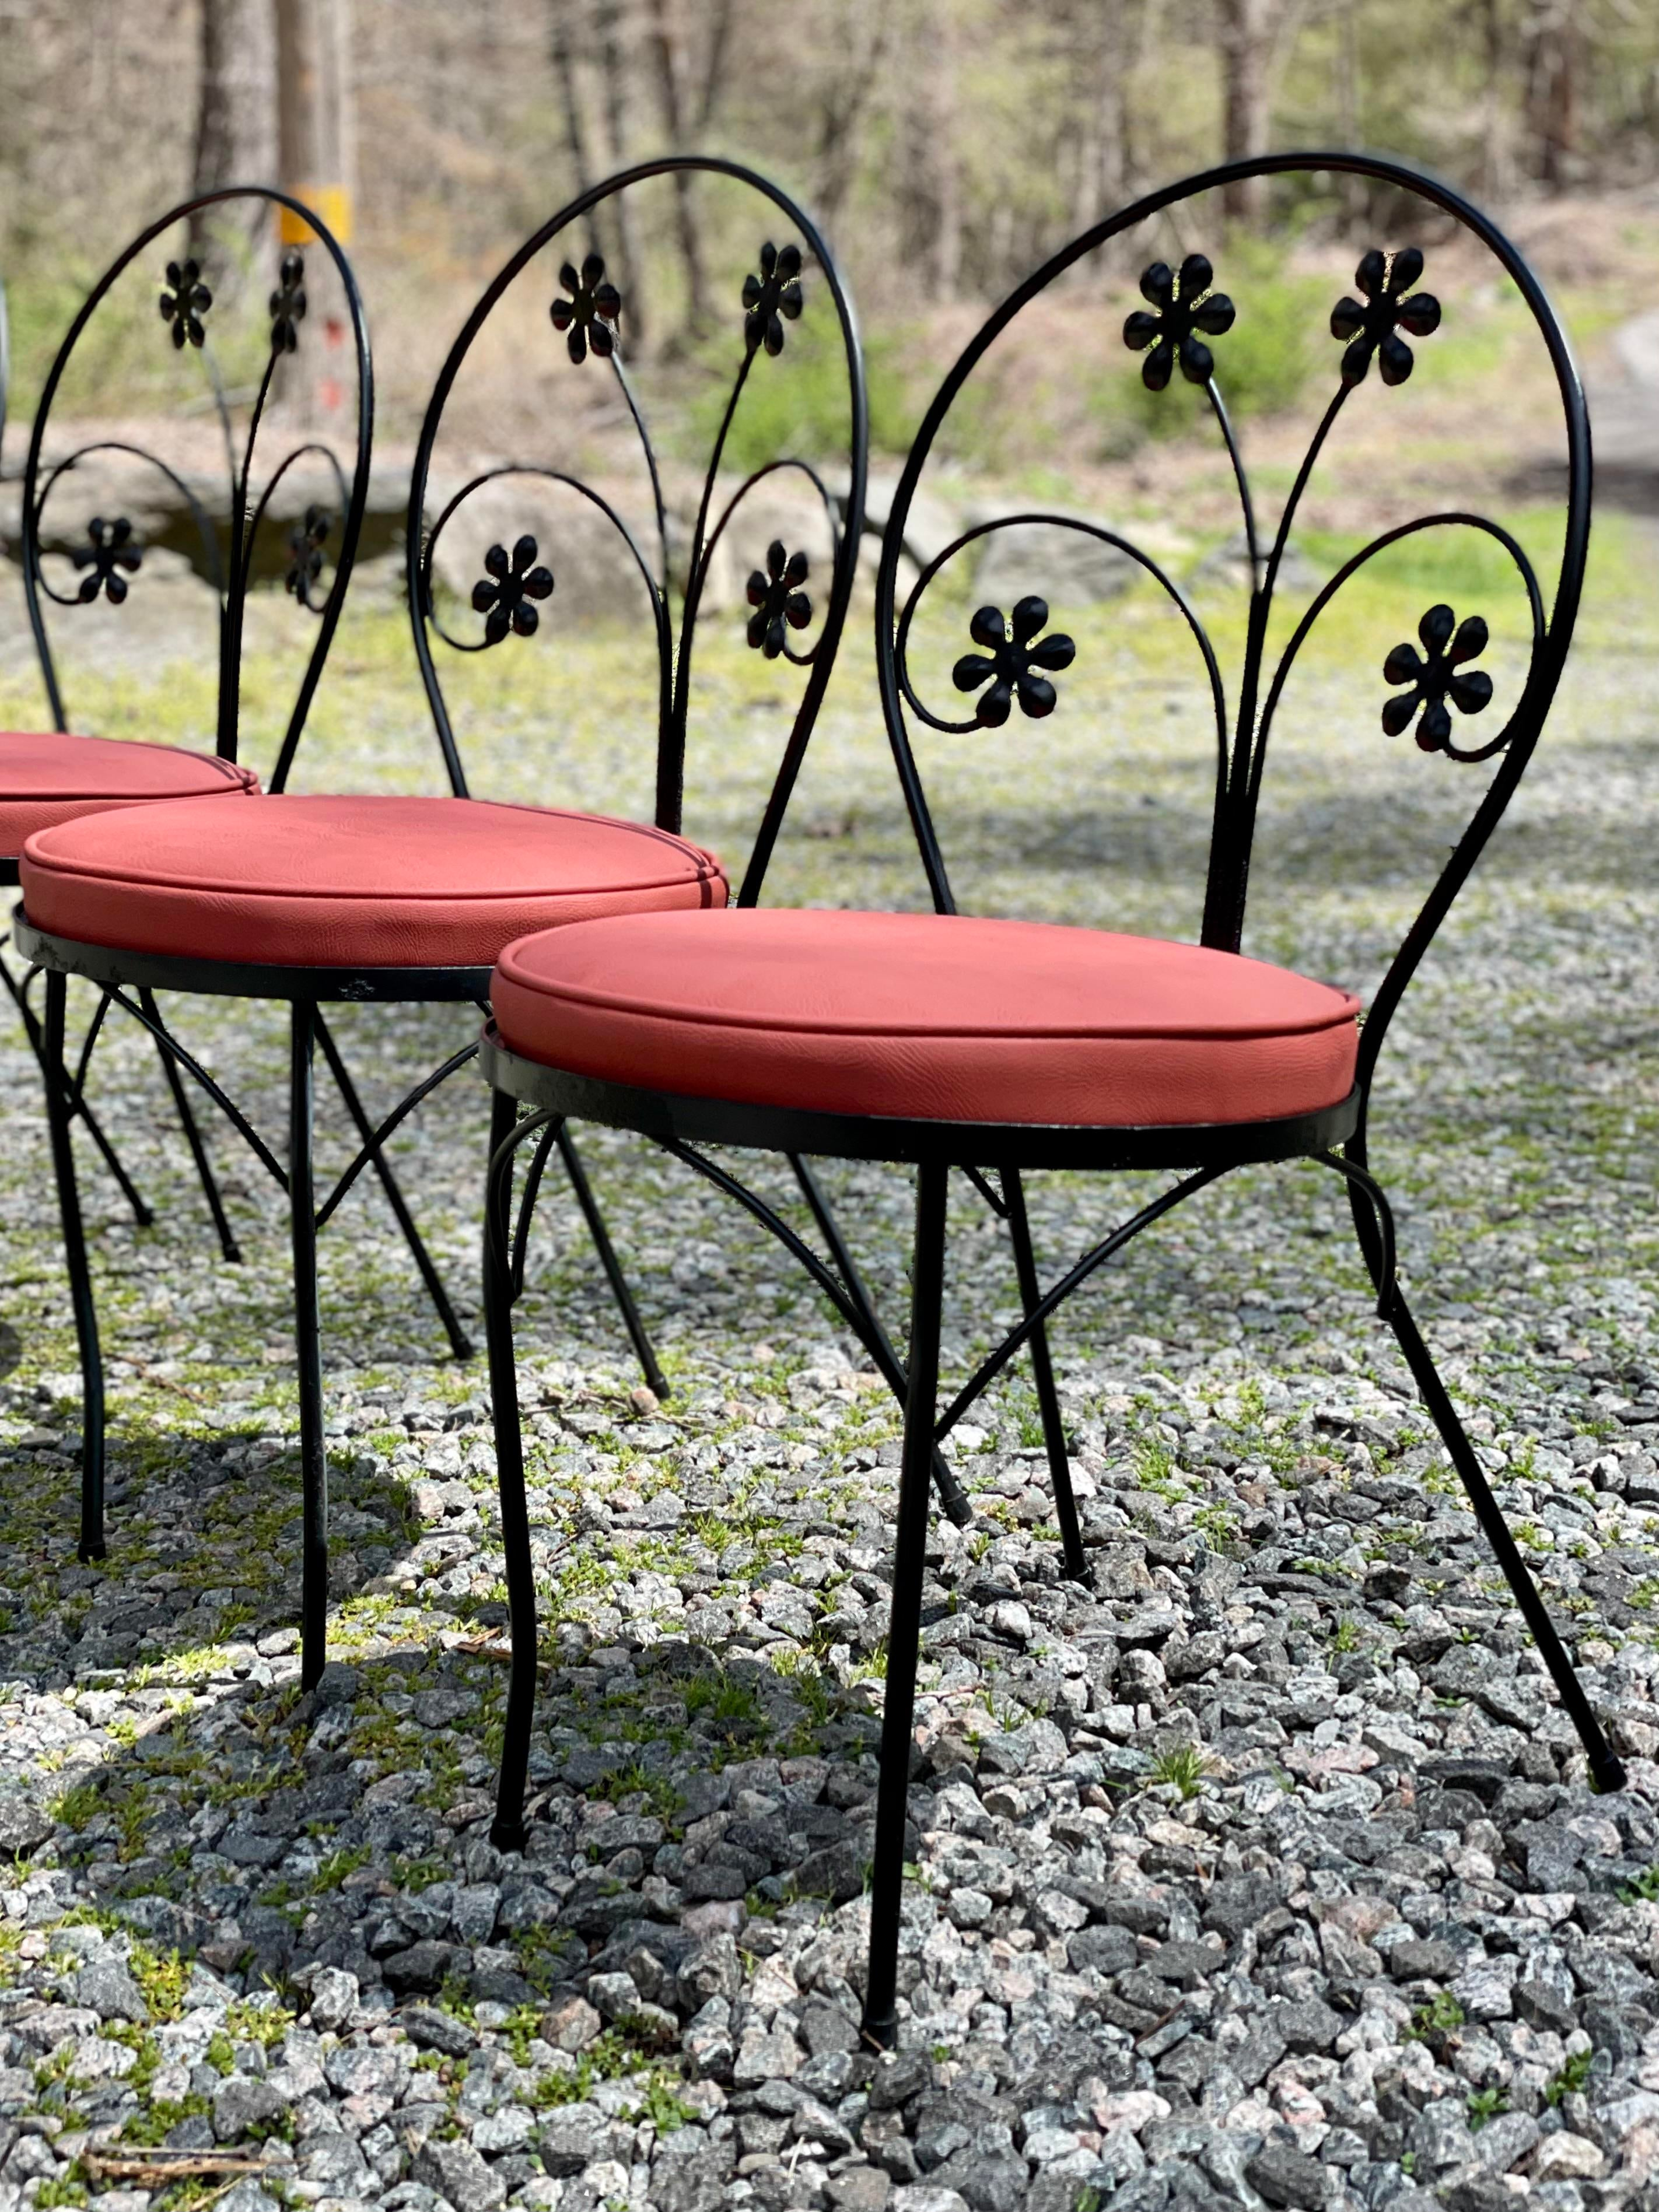 vintage wrought iron daisy flower parlor patio chairs by plantation patterns restored